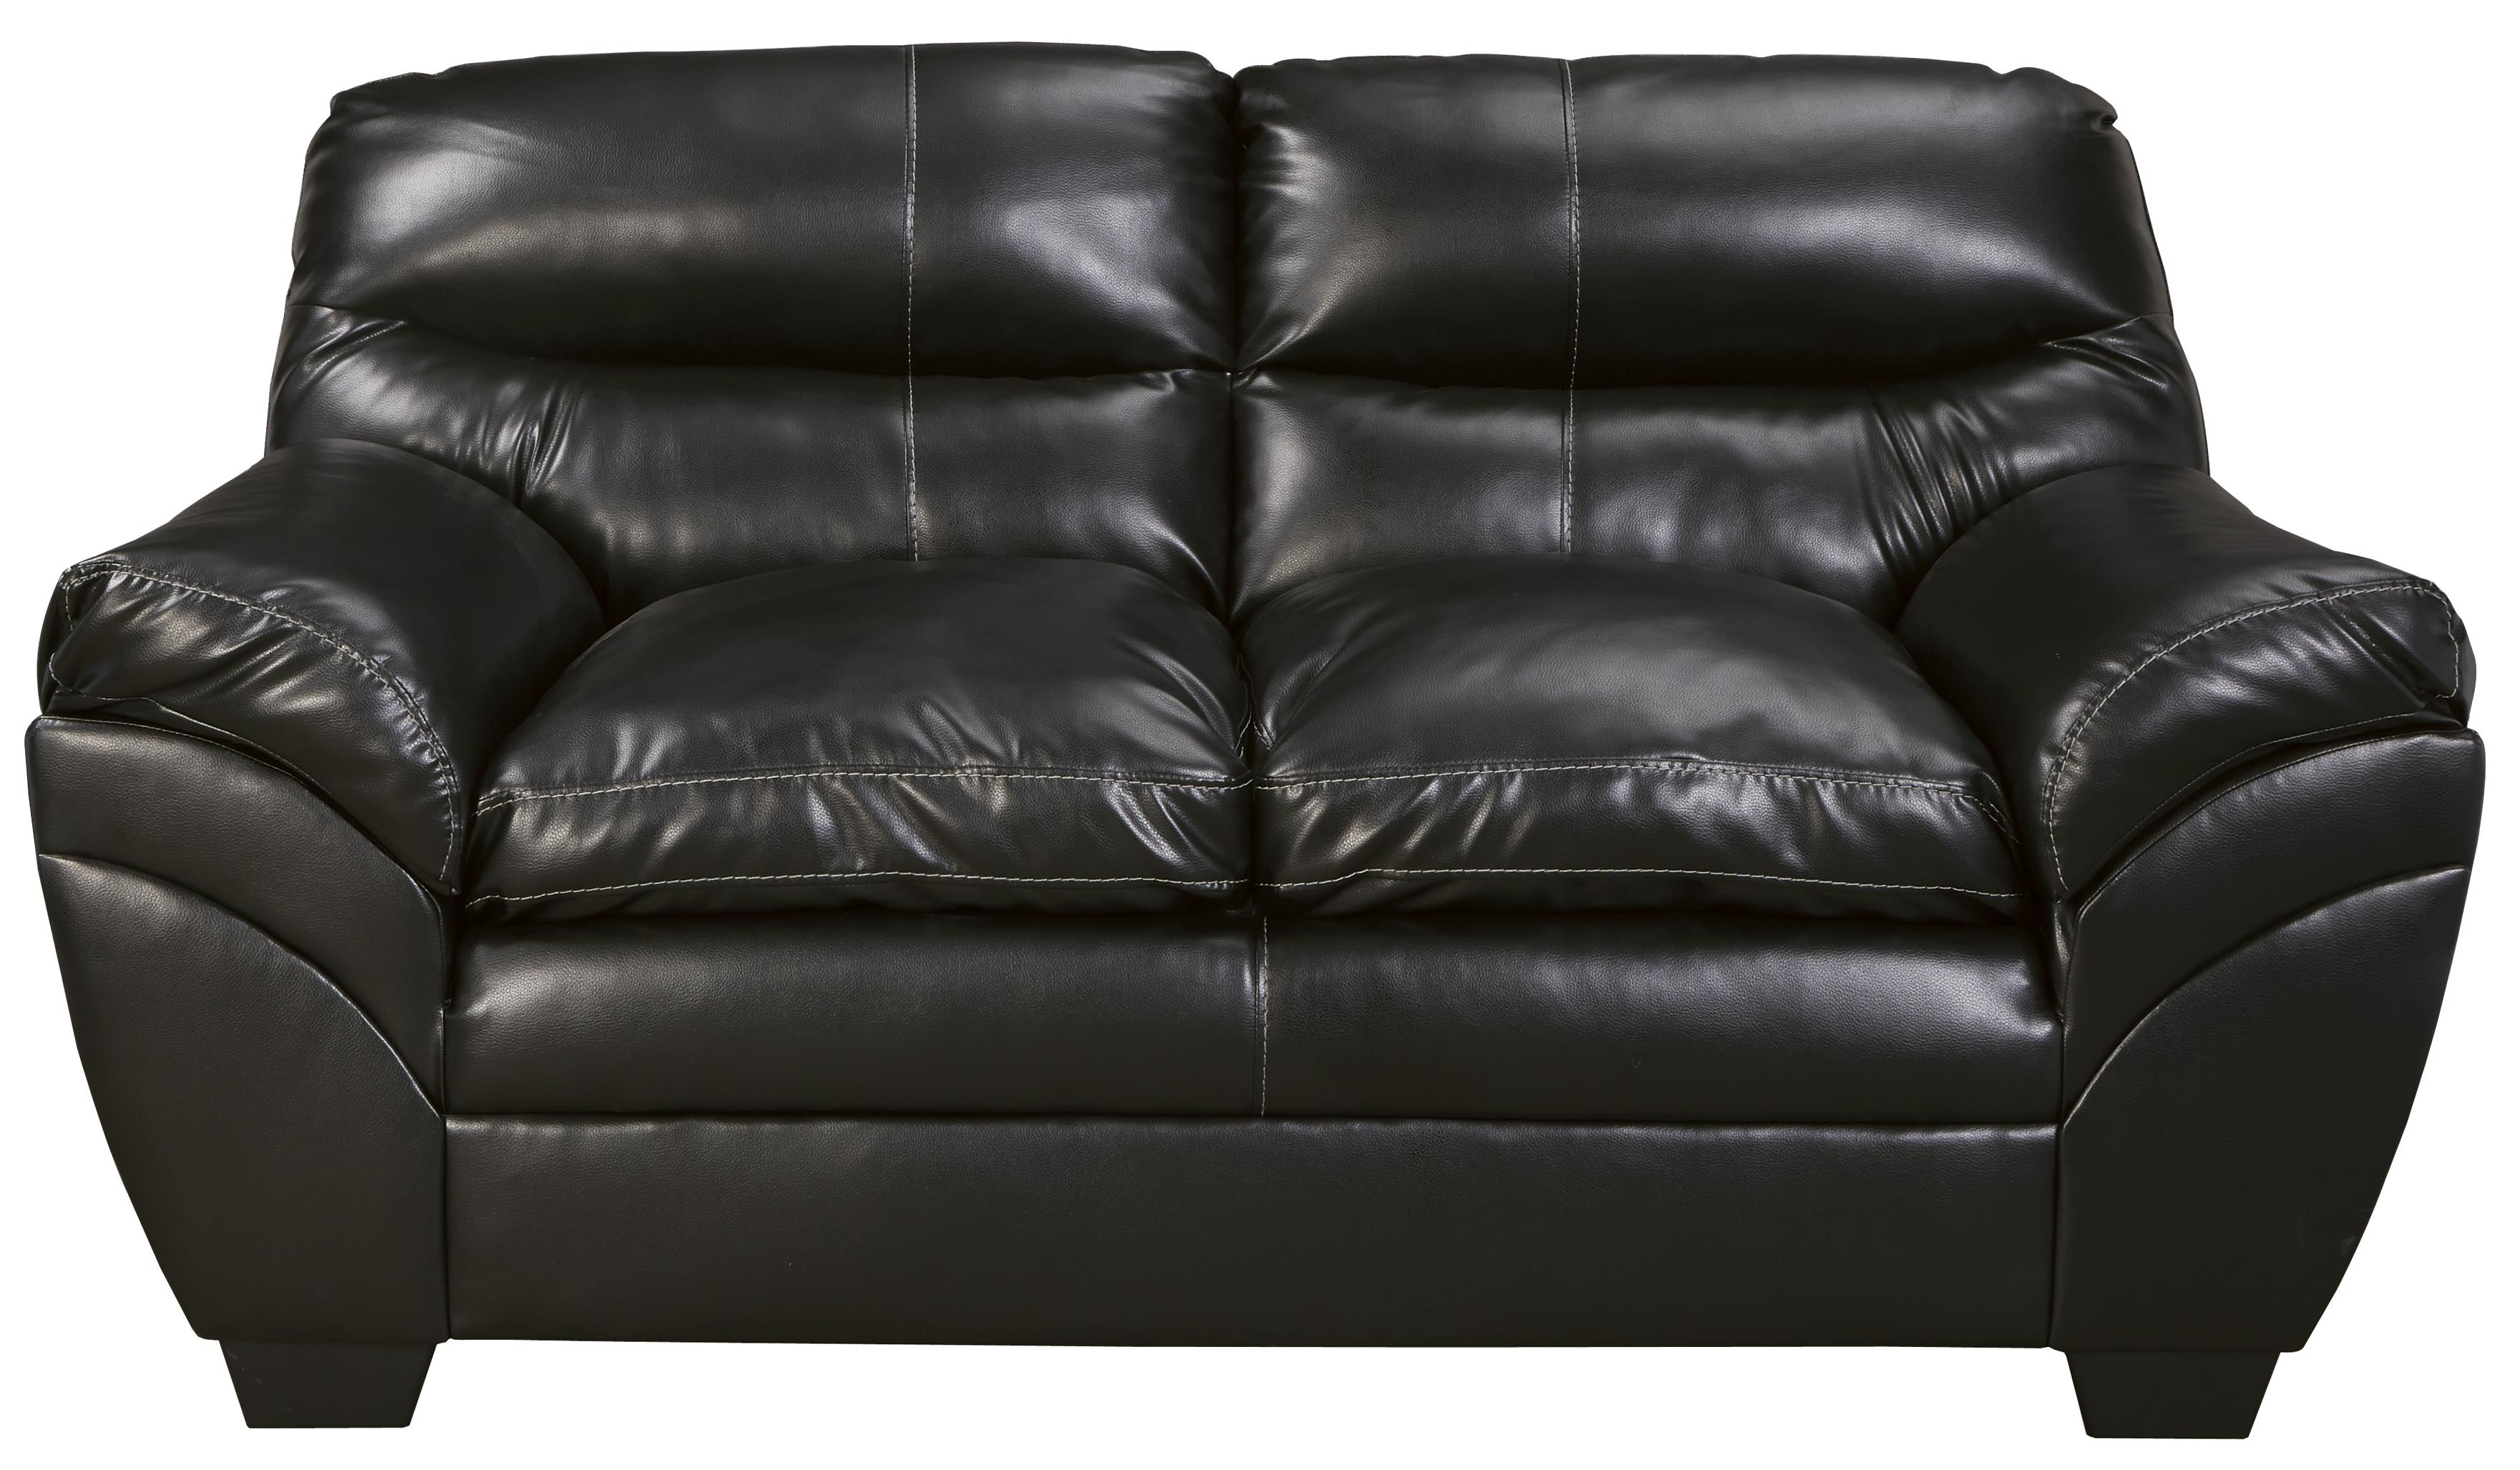 Signature Design by Ashley Tassler DuraBlend® Loveseat - Item Number: 4650135